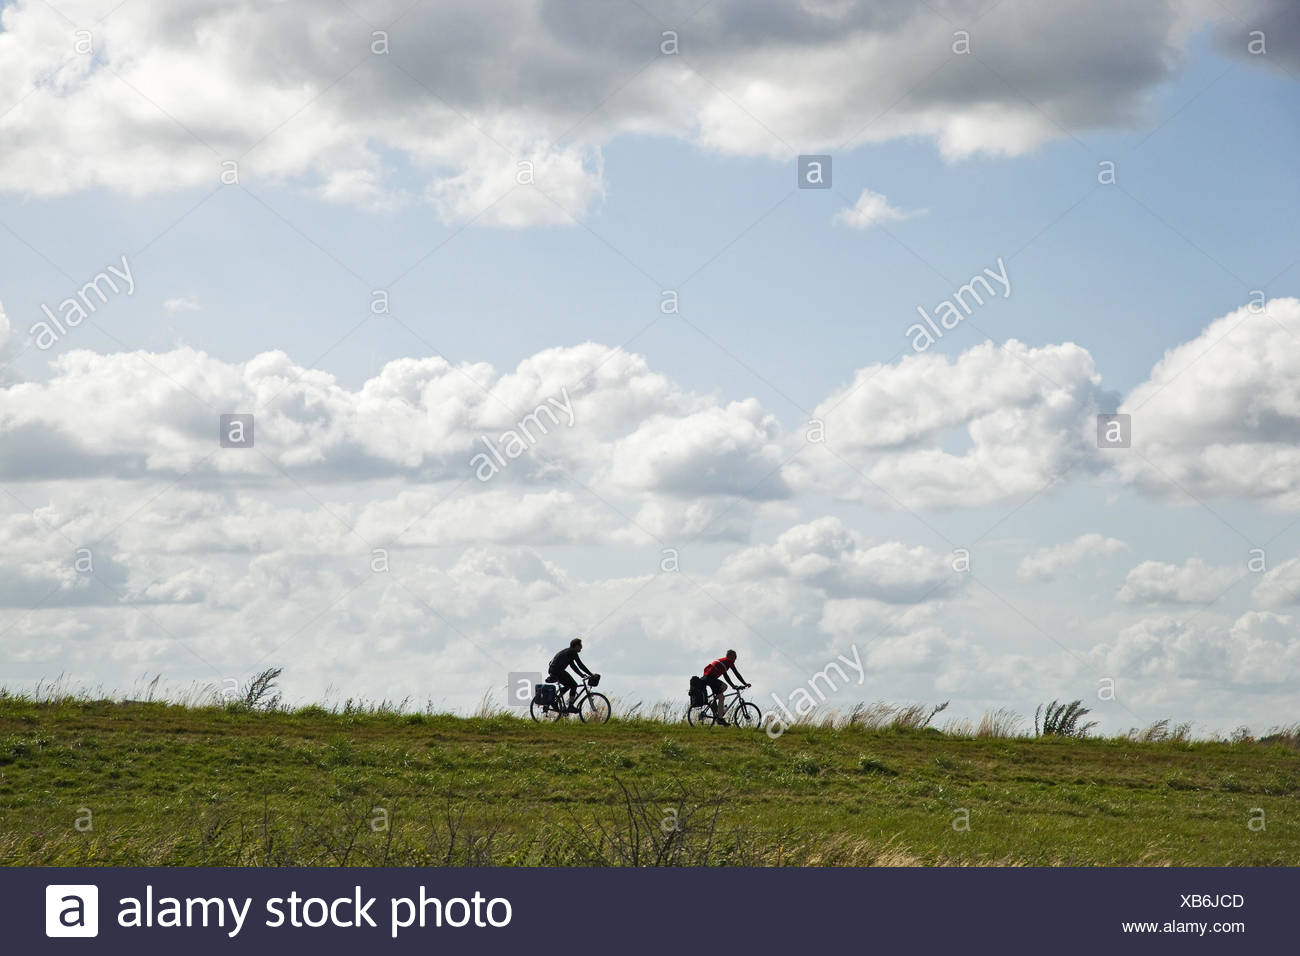 Cyclist, dyke, cloudy sky, - Stock Image